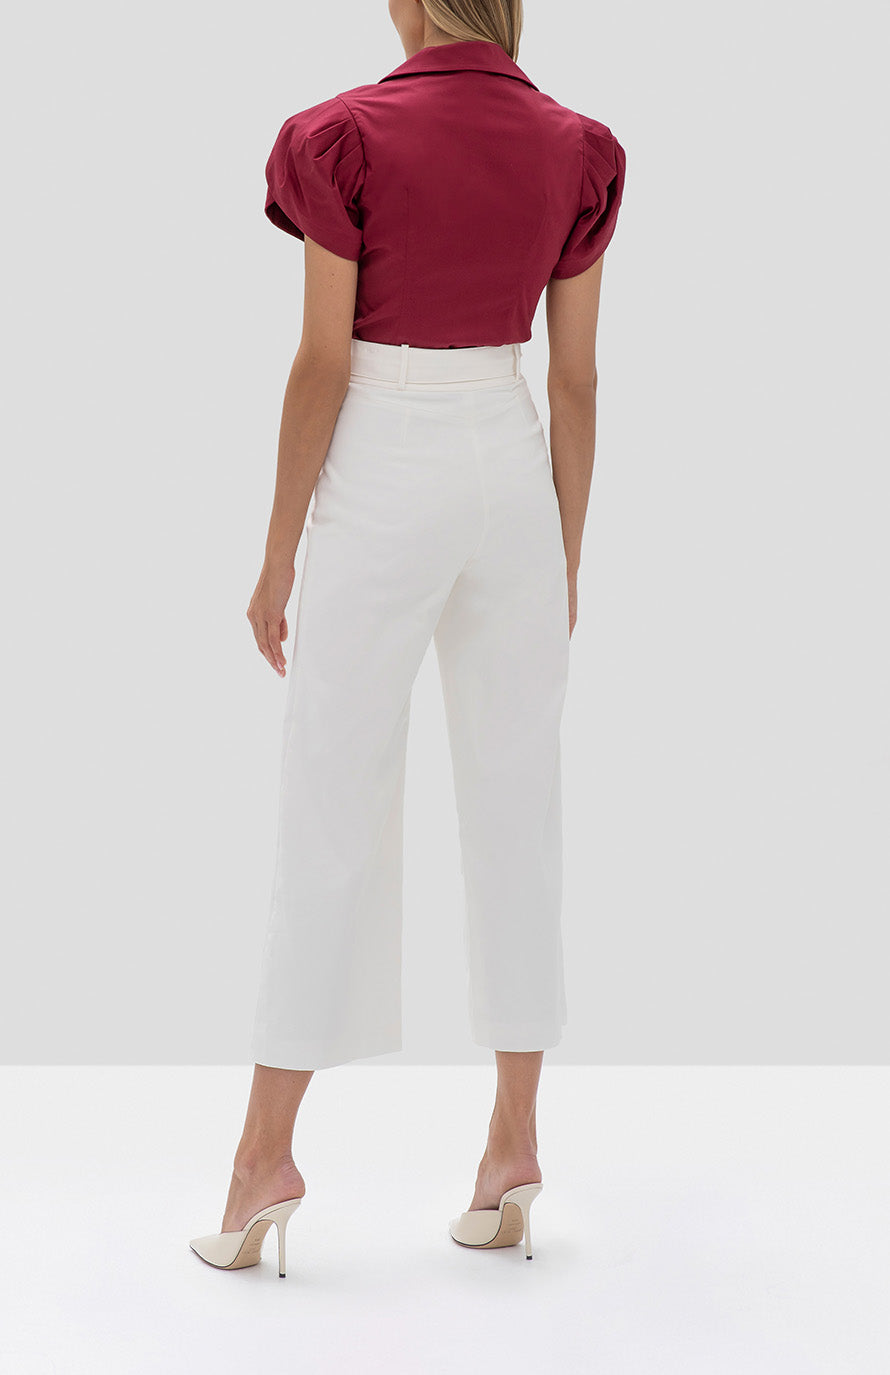 Alexis Cass Top in Rasberry and Everette Pant in White - Rear View